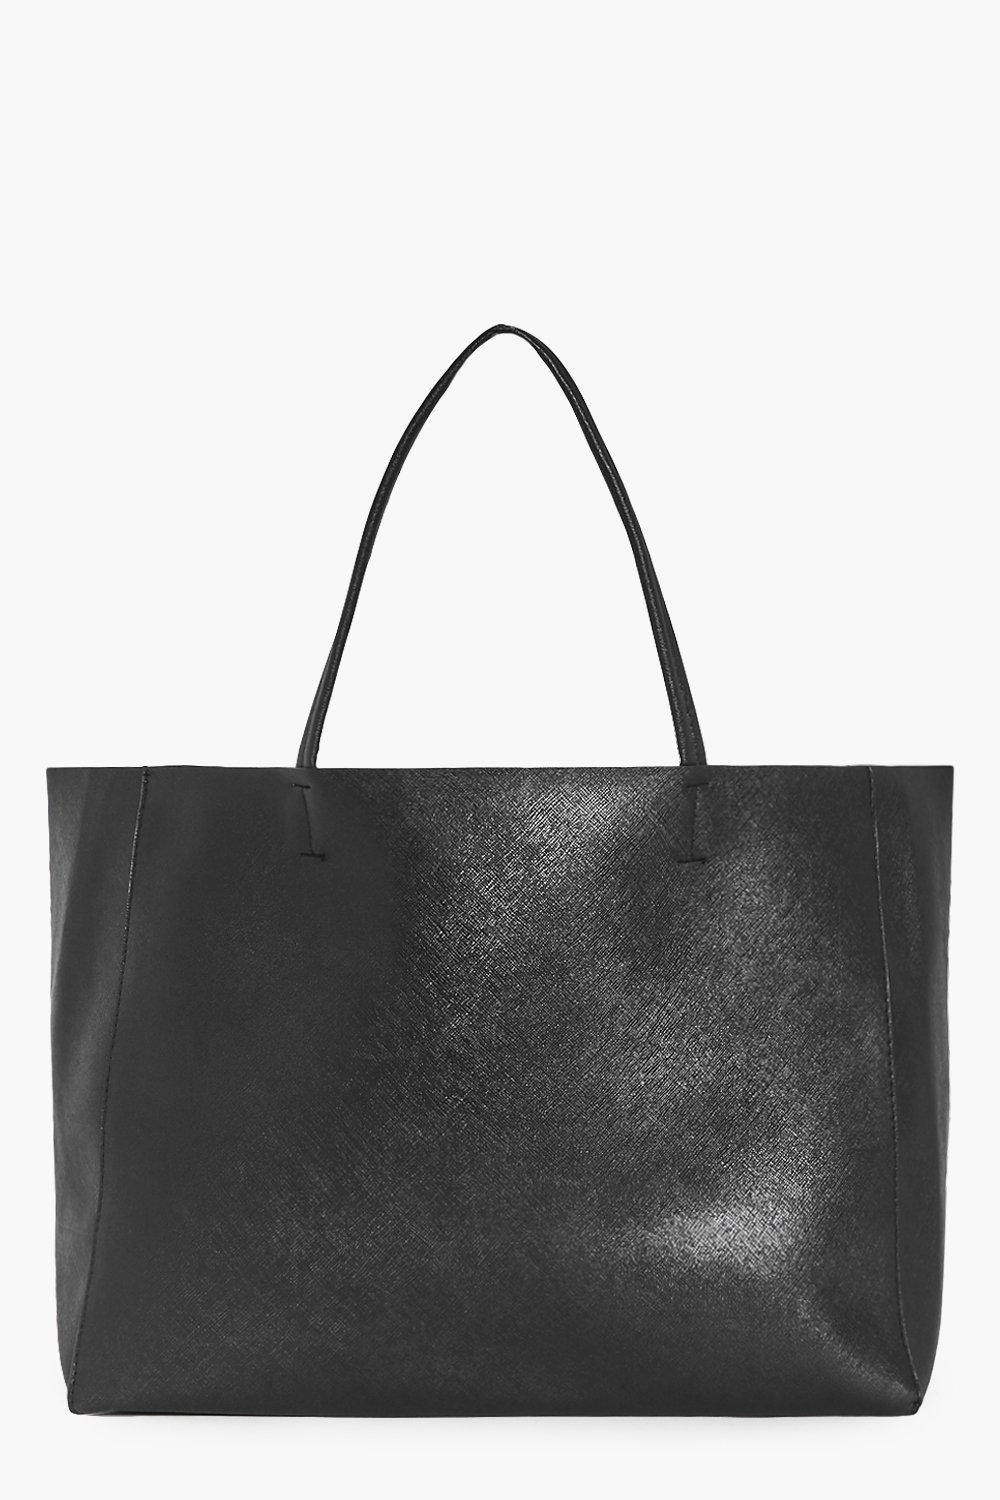 Oversize Unlined Shopper Holdall - black - Laura O